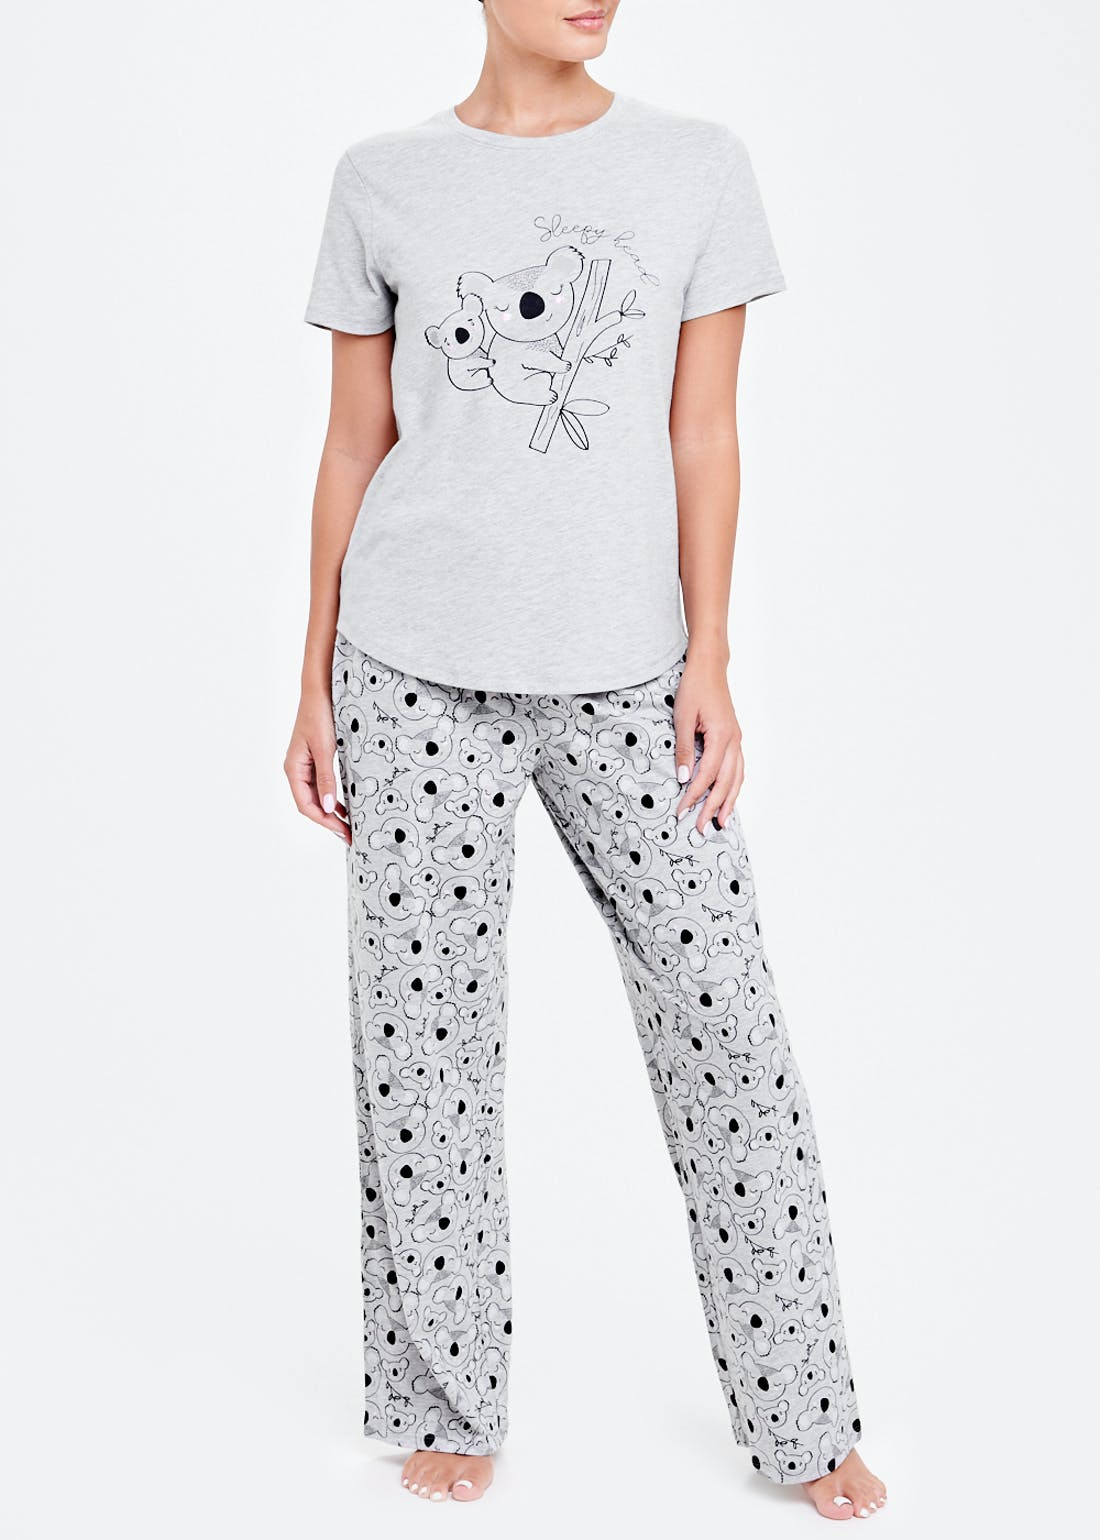 Mix & Match Koala Pyjama Top